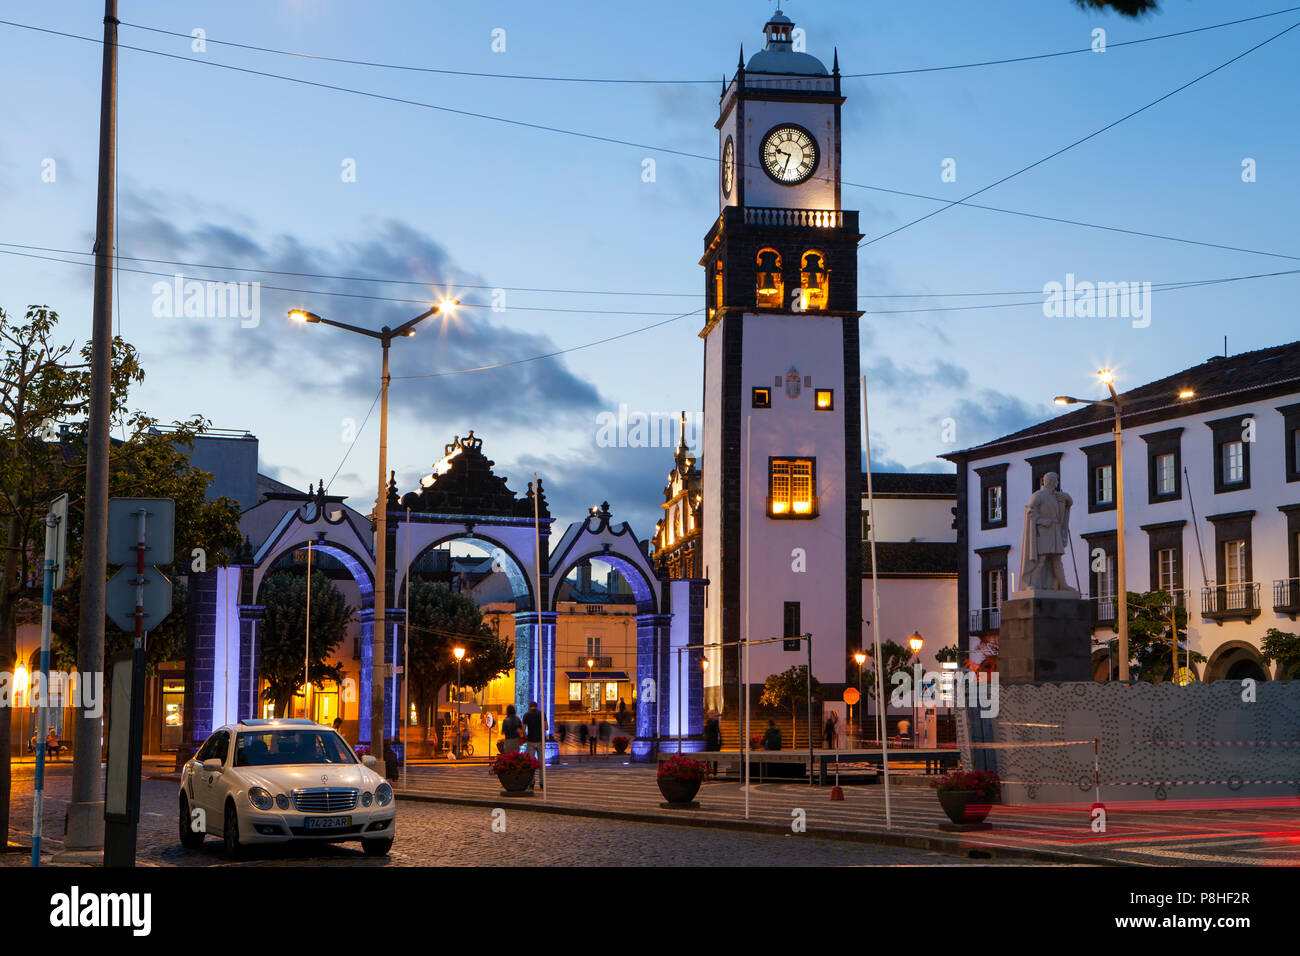 PONTA DELGADA, PORTUGAL - JUNE 28th, 2018: Ponta Delgada, on Sao Miguel Island, is the capital of the Azores archipelago of Portugal. - Stock Image